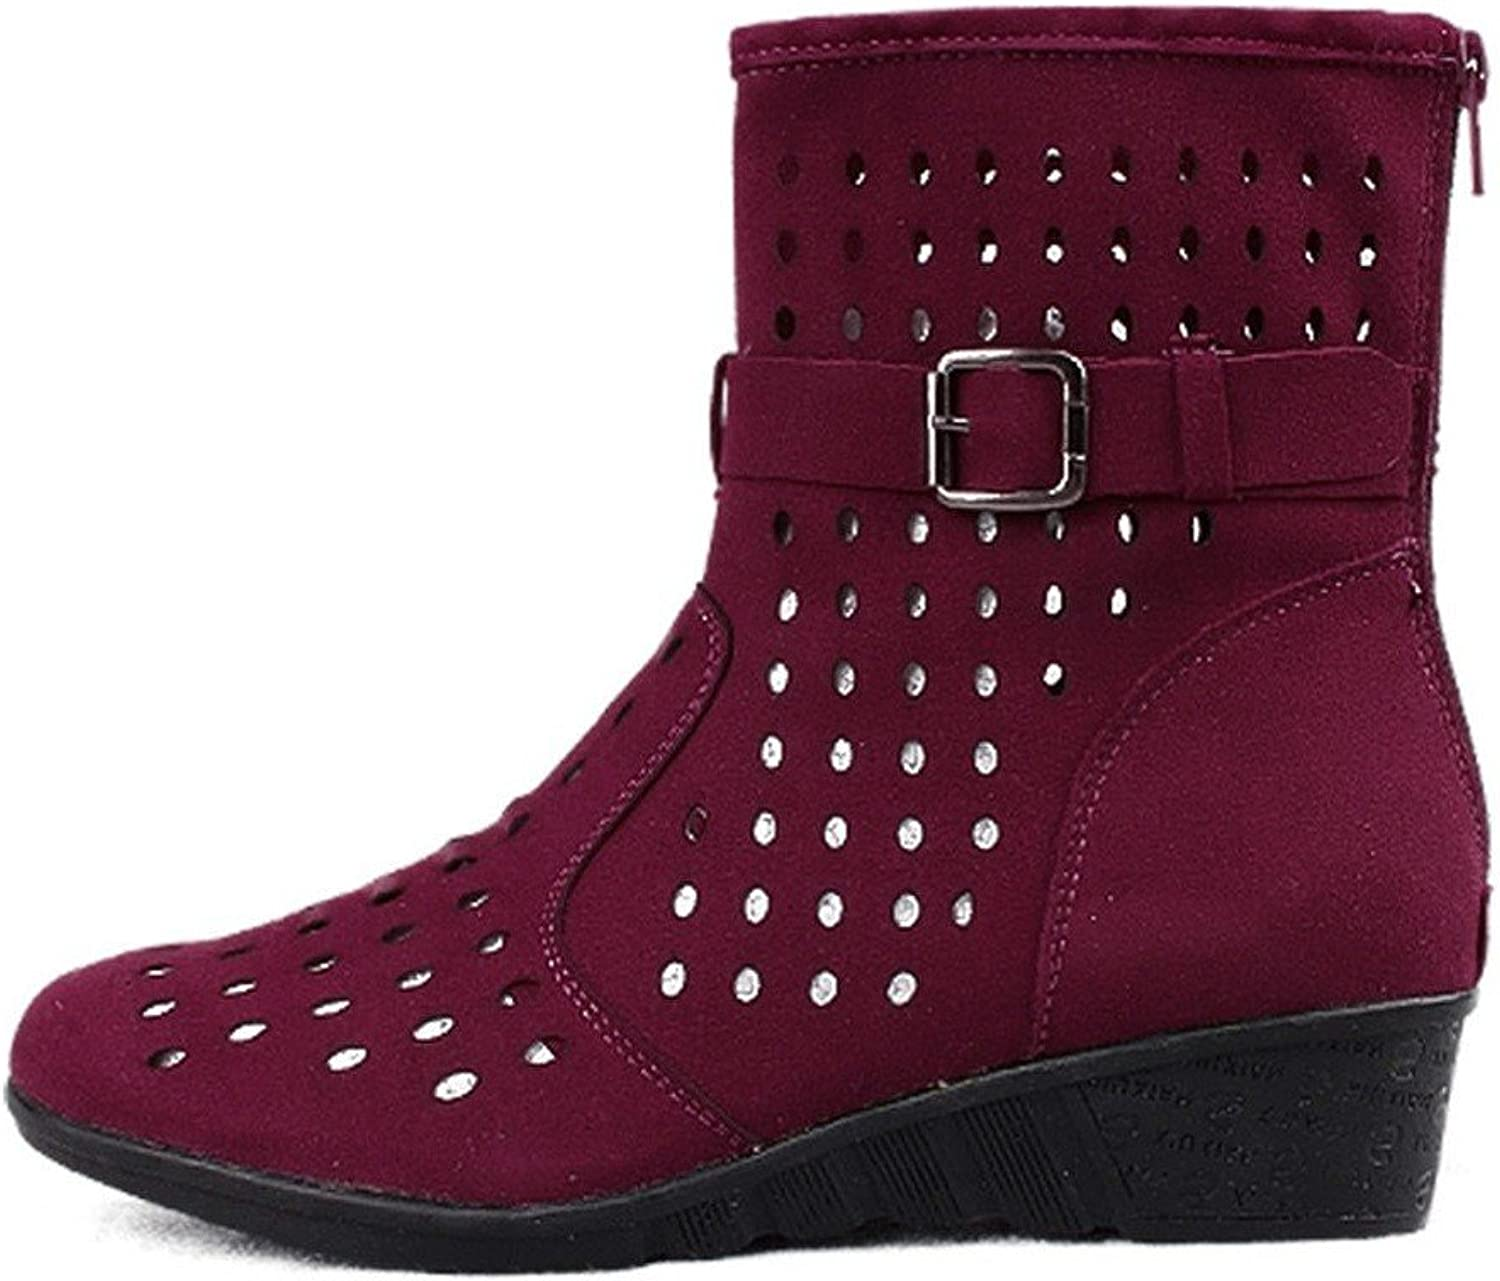 WXMDDN The Girl Dance shoes Latin Dance shoes Purple red Leather Soft, Latin Dance shoes and Dance shoes.